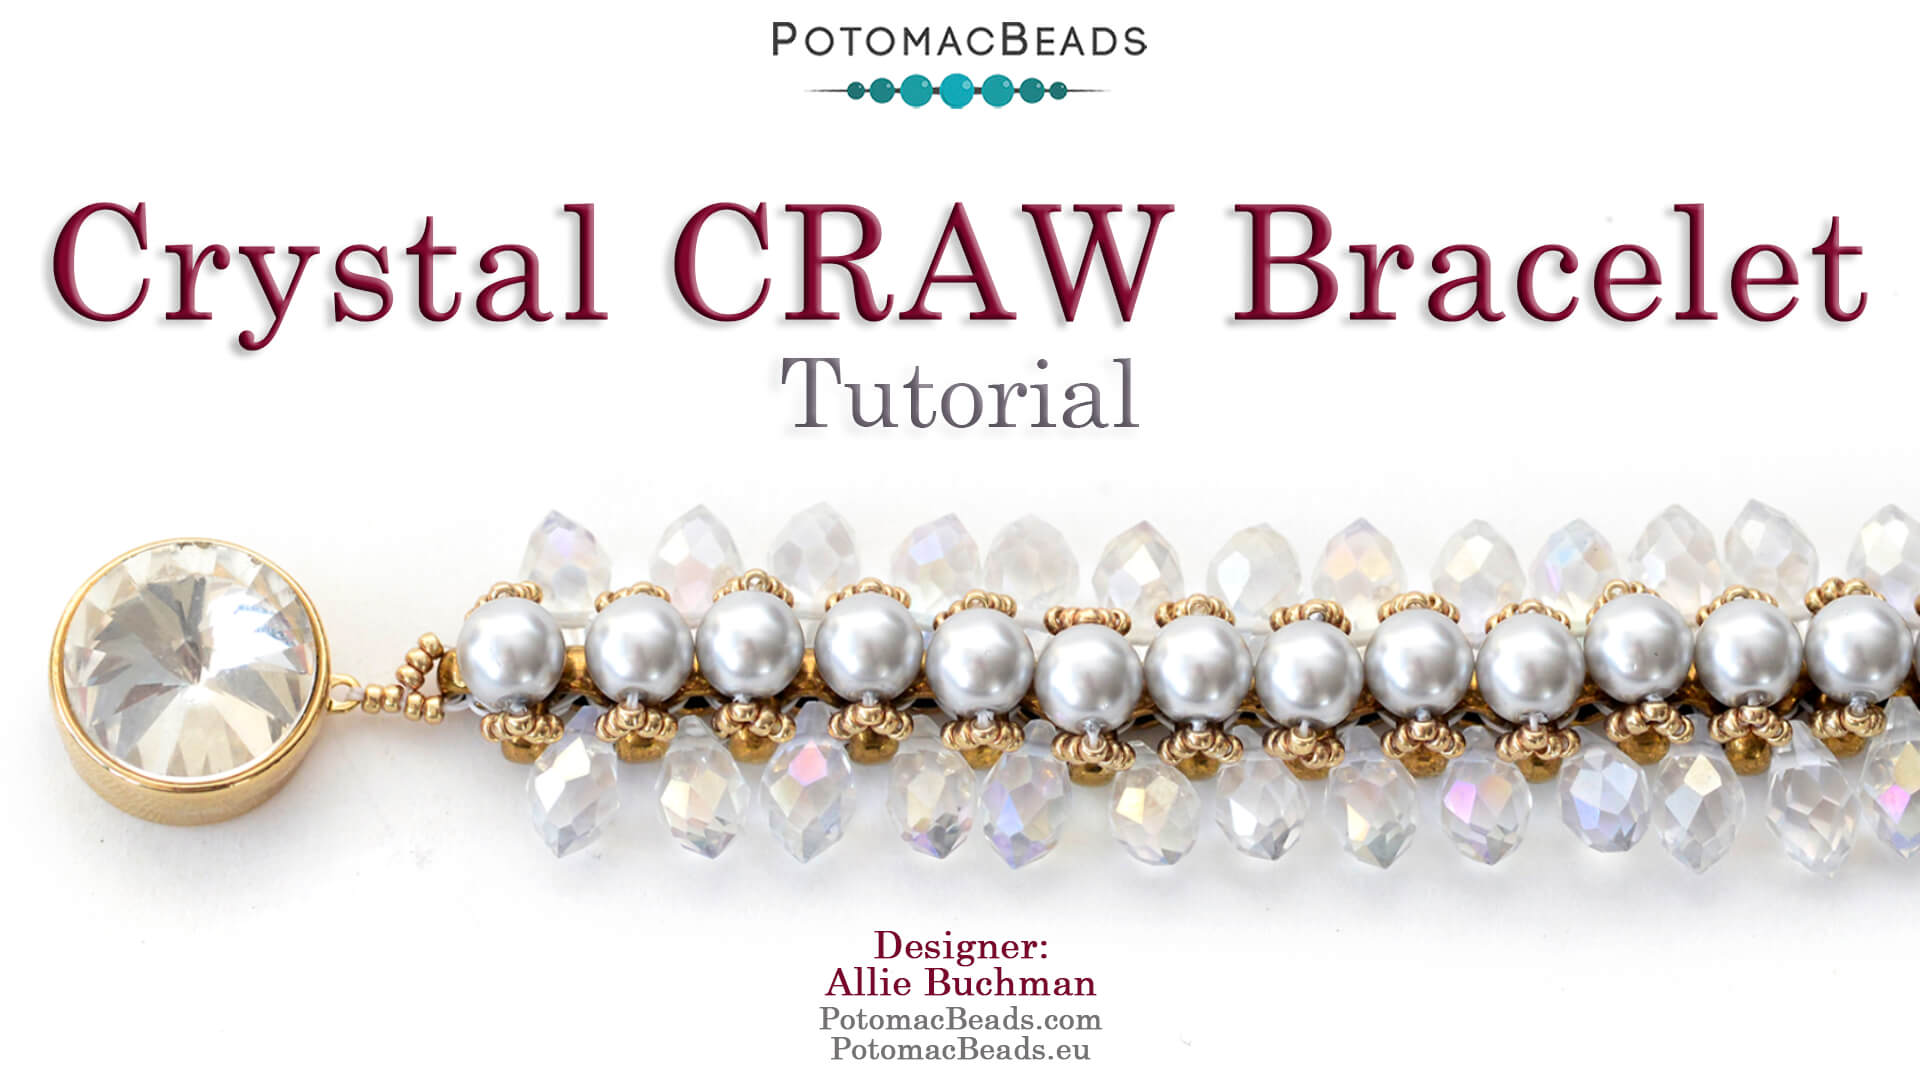 How to Bead Jewelry / Videos Sorted by Beads / Pearl Videos (Czech, Freshwater, Potomac Pearls) / Crystal Craw Bracelet Tutorial